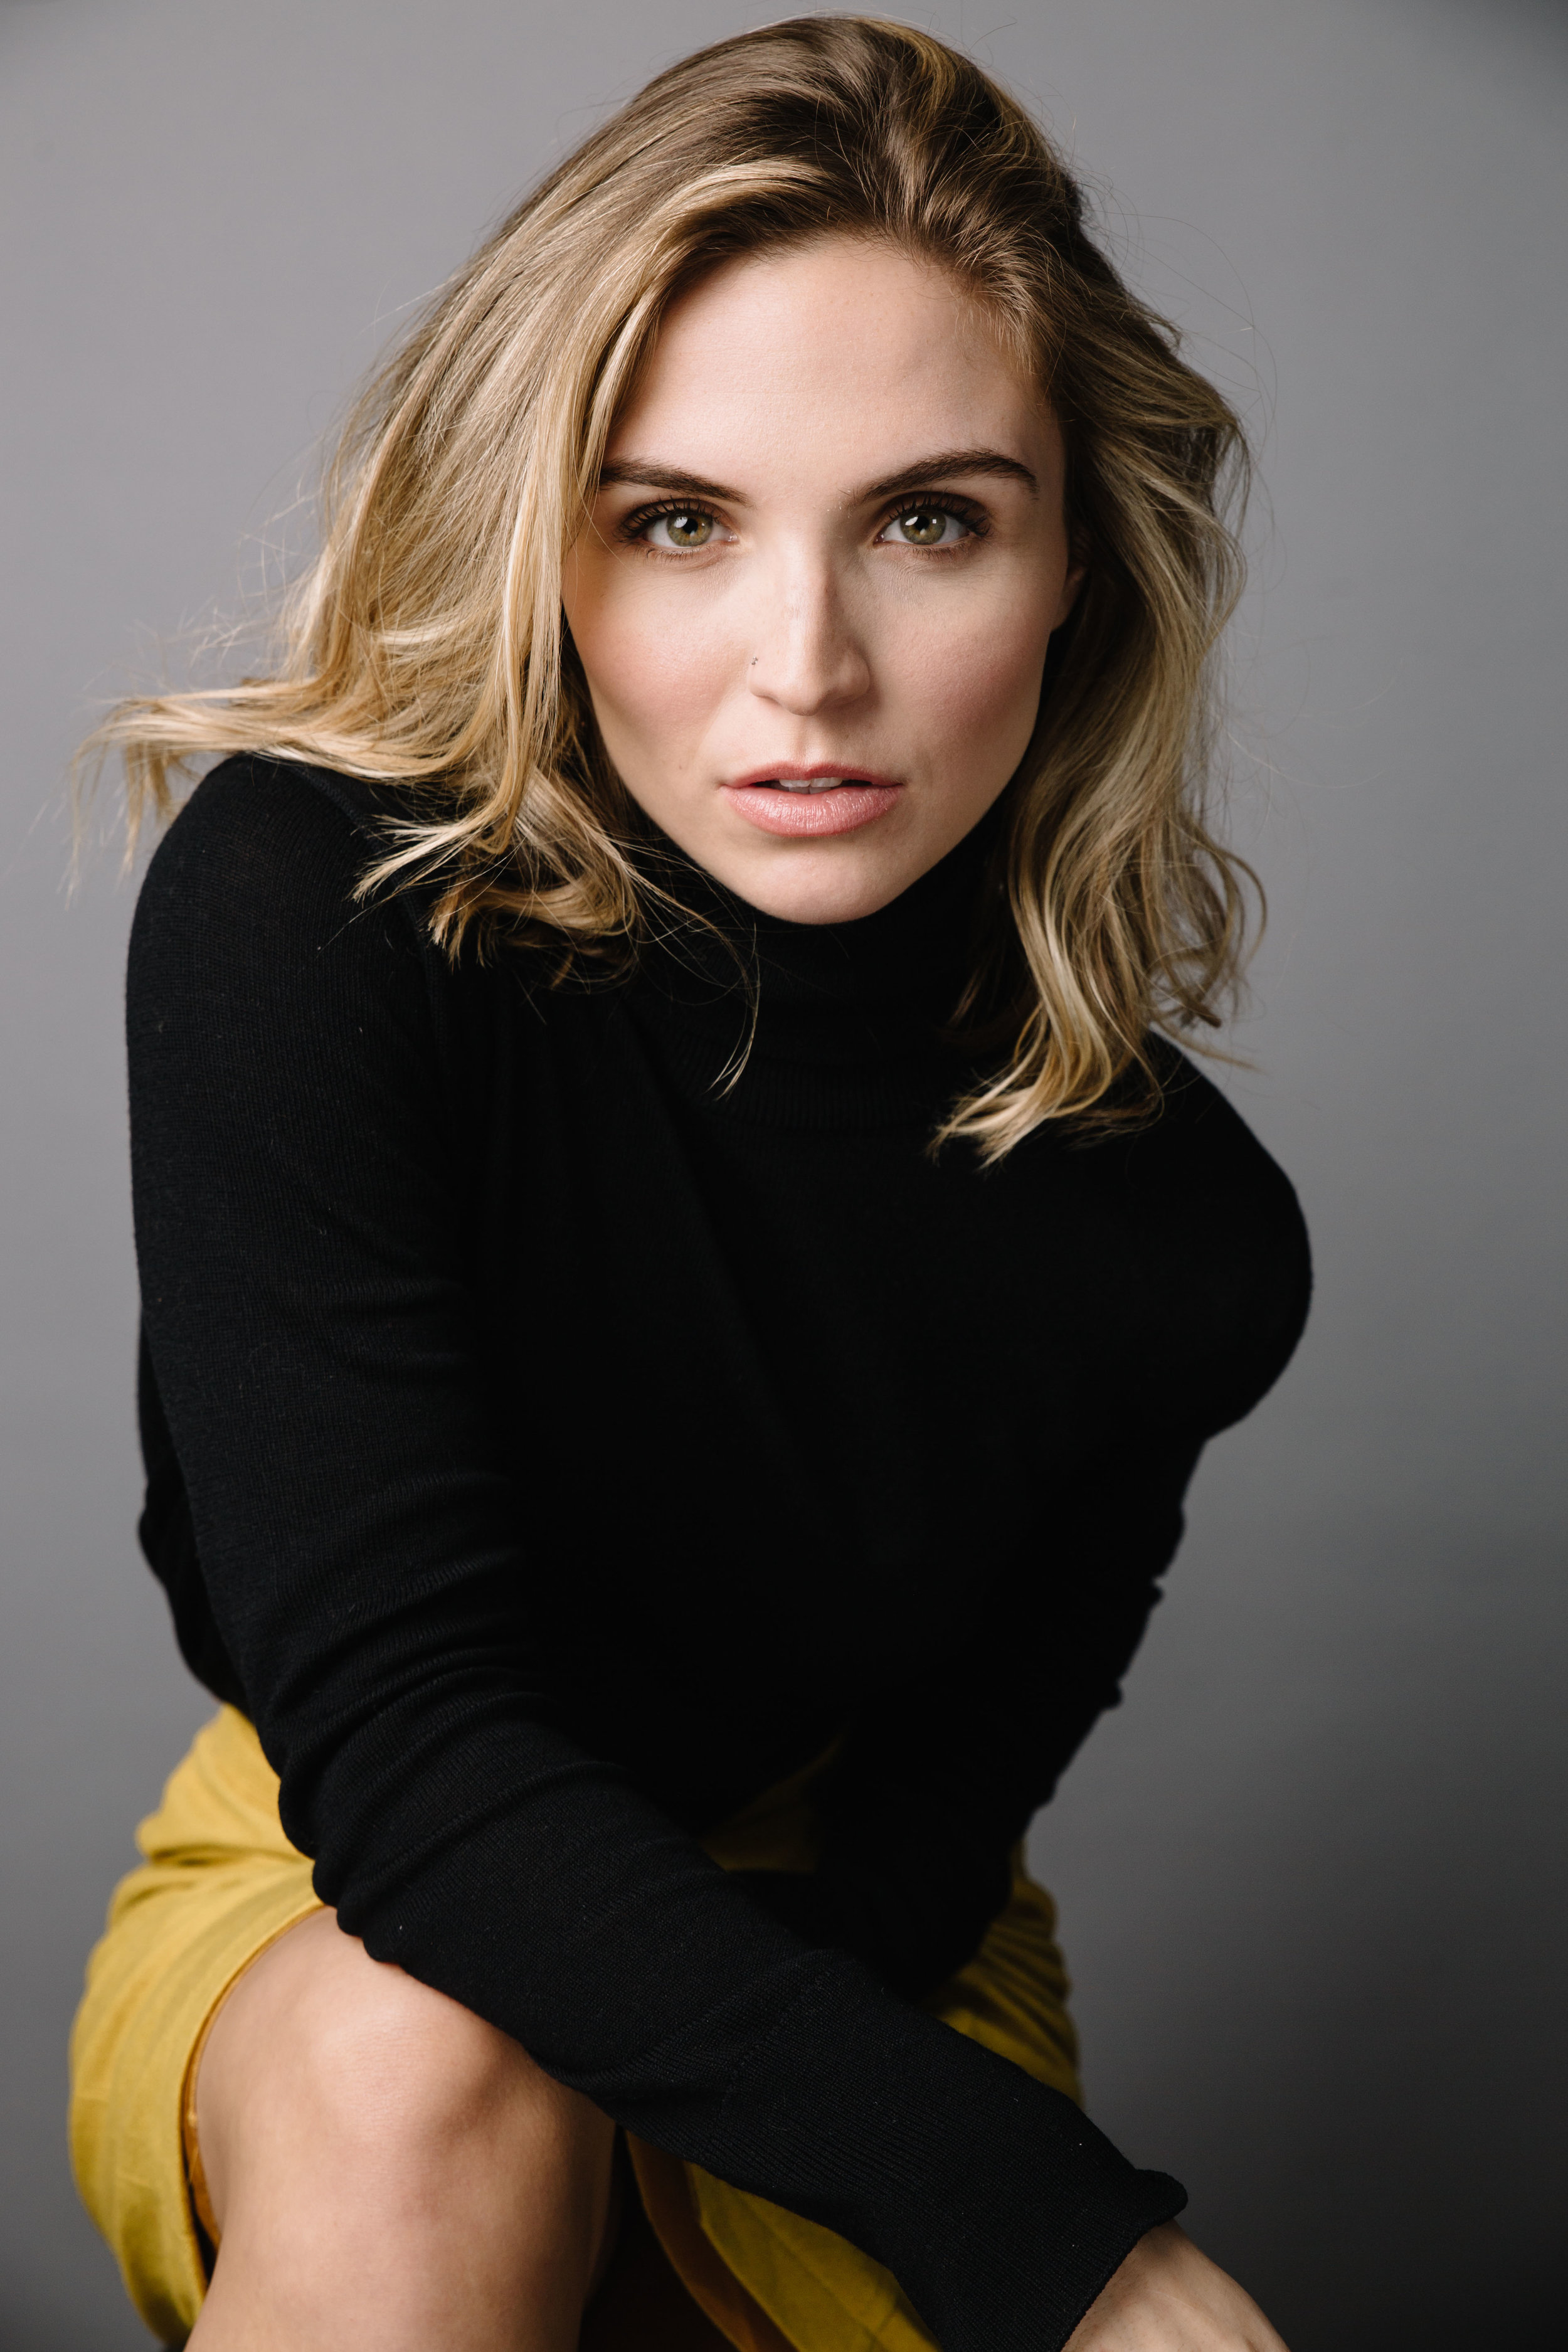 - In 2015, she moved to NYC for her undergraduate degree, where she attended Marymount Manhattan College with a Musical Theatre Concentration and graduated Summa Cum Laude. While attending MMC, Claire discovered her passion for Movement Direction, Shakespeare, and Checkov as well as musical theatre. Claire's insight led her to multiple opportunities as an assistant director and movement associate on two main stage productions. These opportunities continued to nourish her acting and helped develop a deeper love for the characters she played, from those of Shakespeare to those of Sophie Treadwell.Her curiosity even led her to spend a summer backpacking France, practicing her 8 years of French, and discovering her passion for food and travel. When not performing Claire has a passion for all things French, floral design, contemporary art, and trying new recipes!